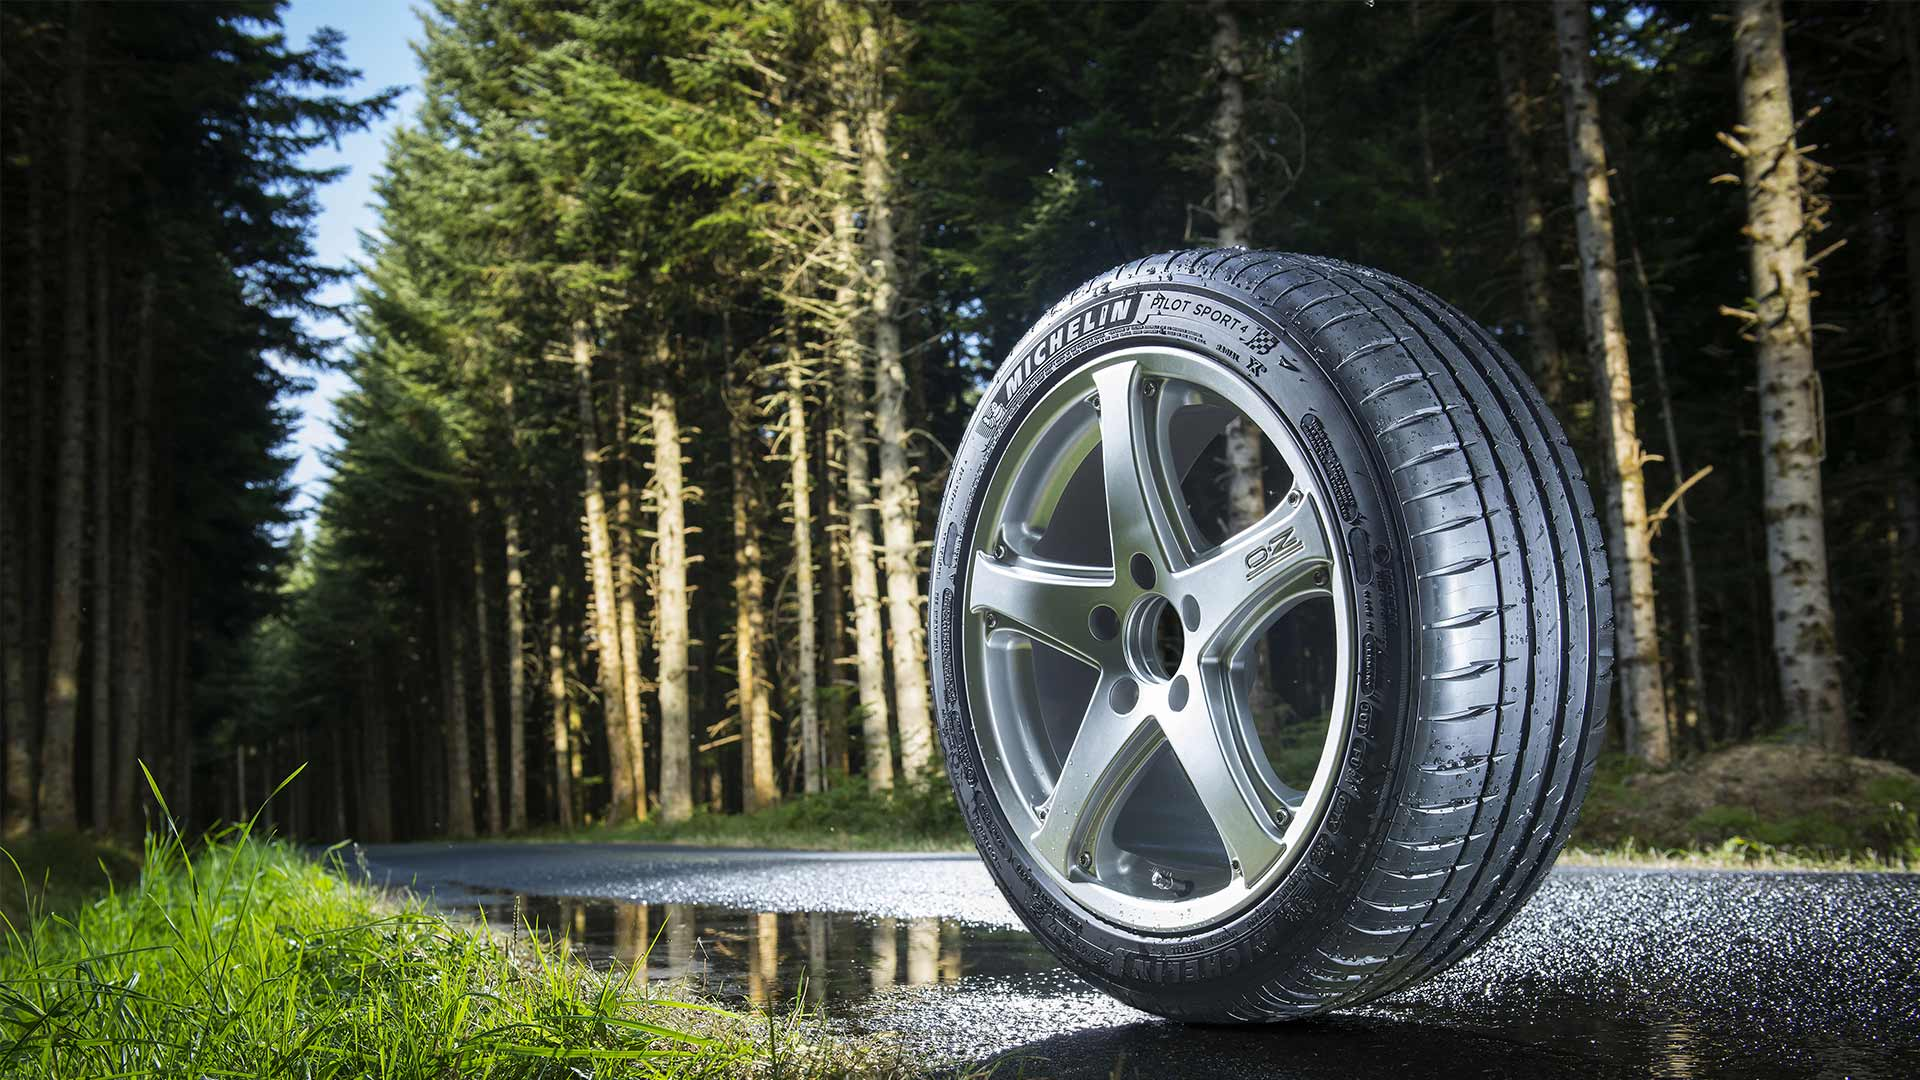 Michelin Sets 2050 Deadline for 100% Sustainable Tires